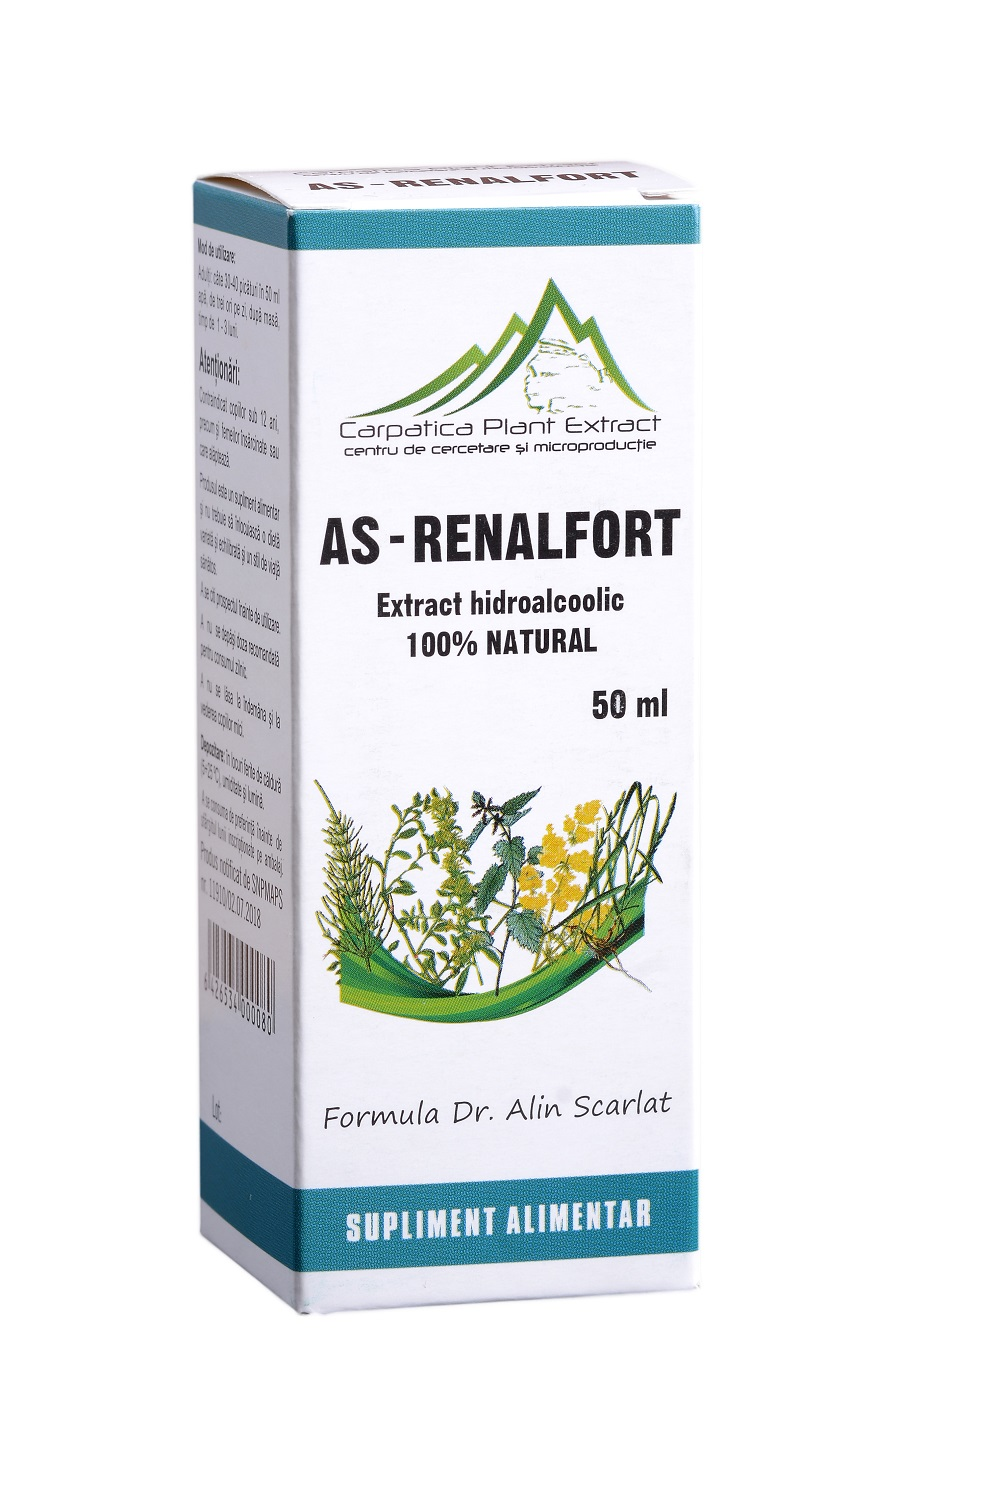 AS - Renalfort, 50 ml, Carpatica Plant Extract drmax poza